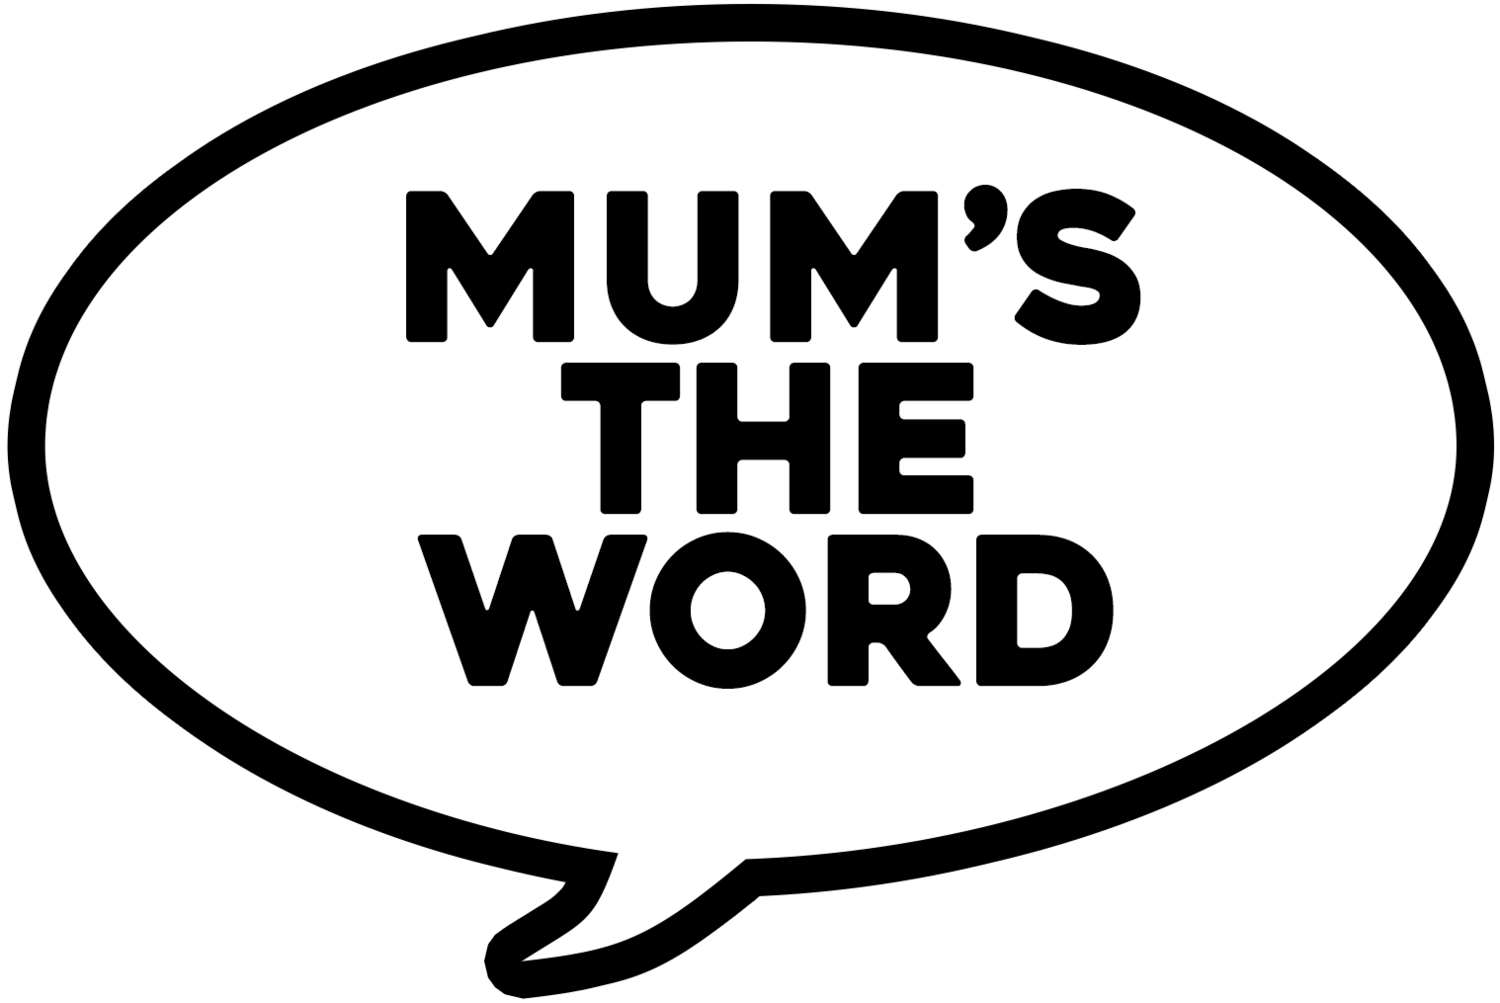 vector freeuse download Mum s the word. Cereal clipart breakfast club.